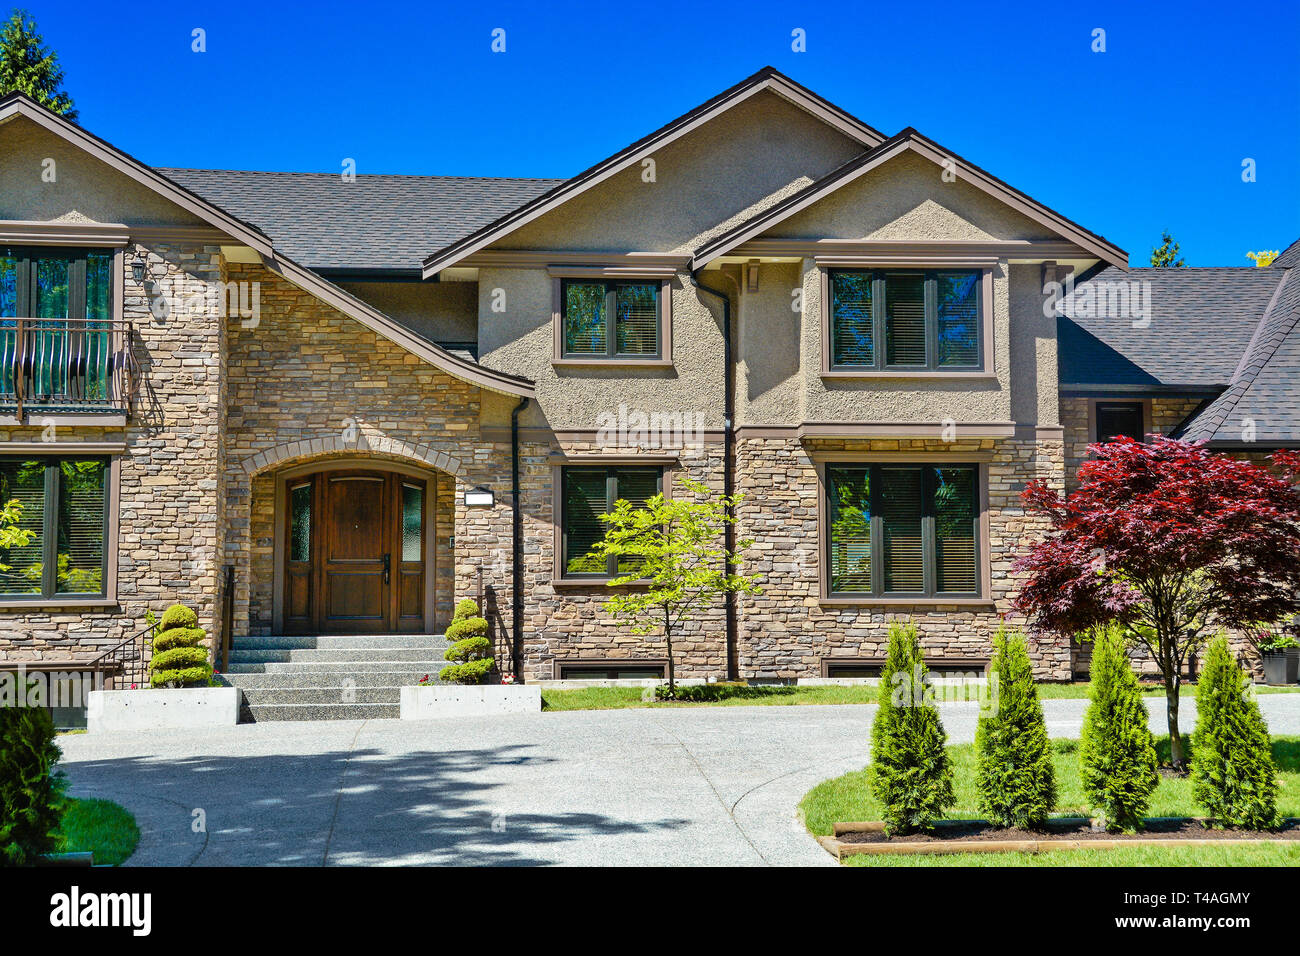 Luxury Family House With Concrete Driveway In Front On Blue Sky Background Stock Photo Alamy